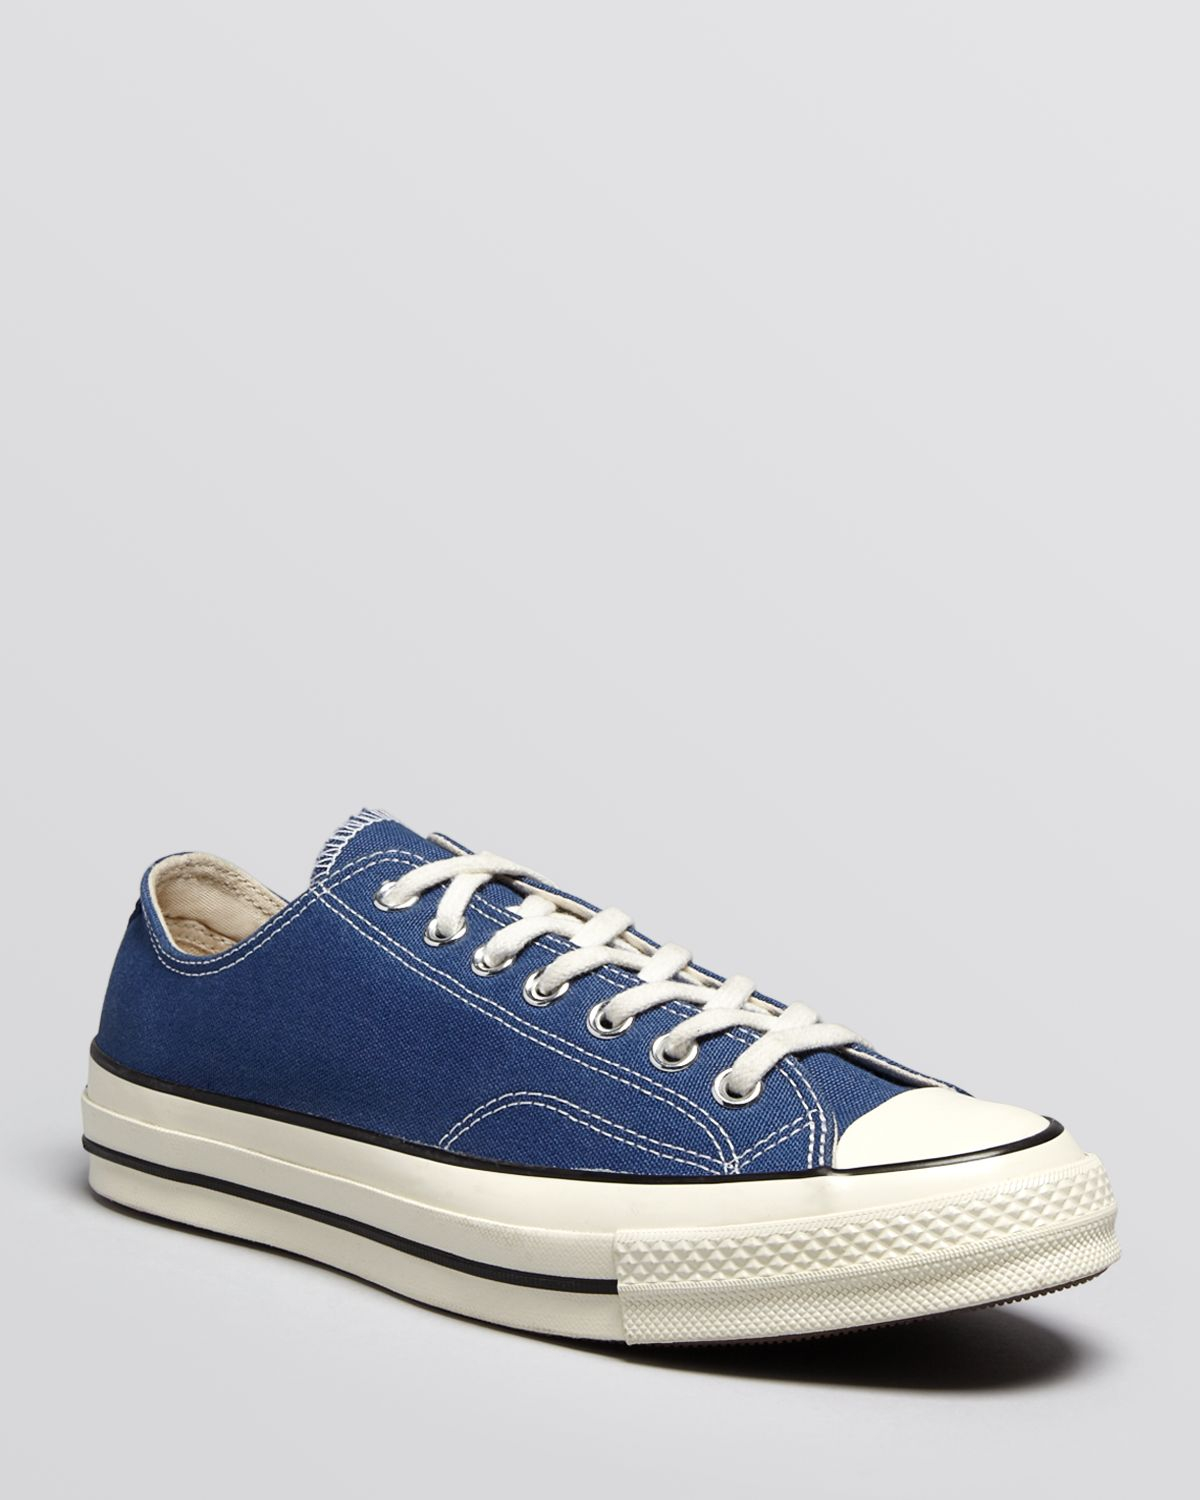 c1cd284fe0b1 Lyst - Converse Chuck Taylor All Star  70 Low Top Sneakers in Blue ...